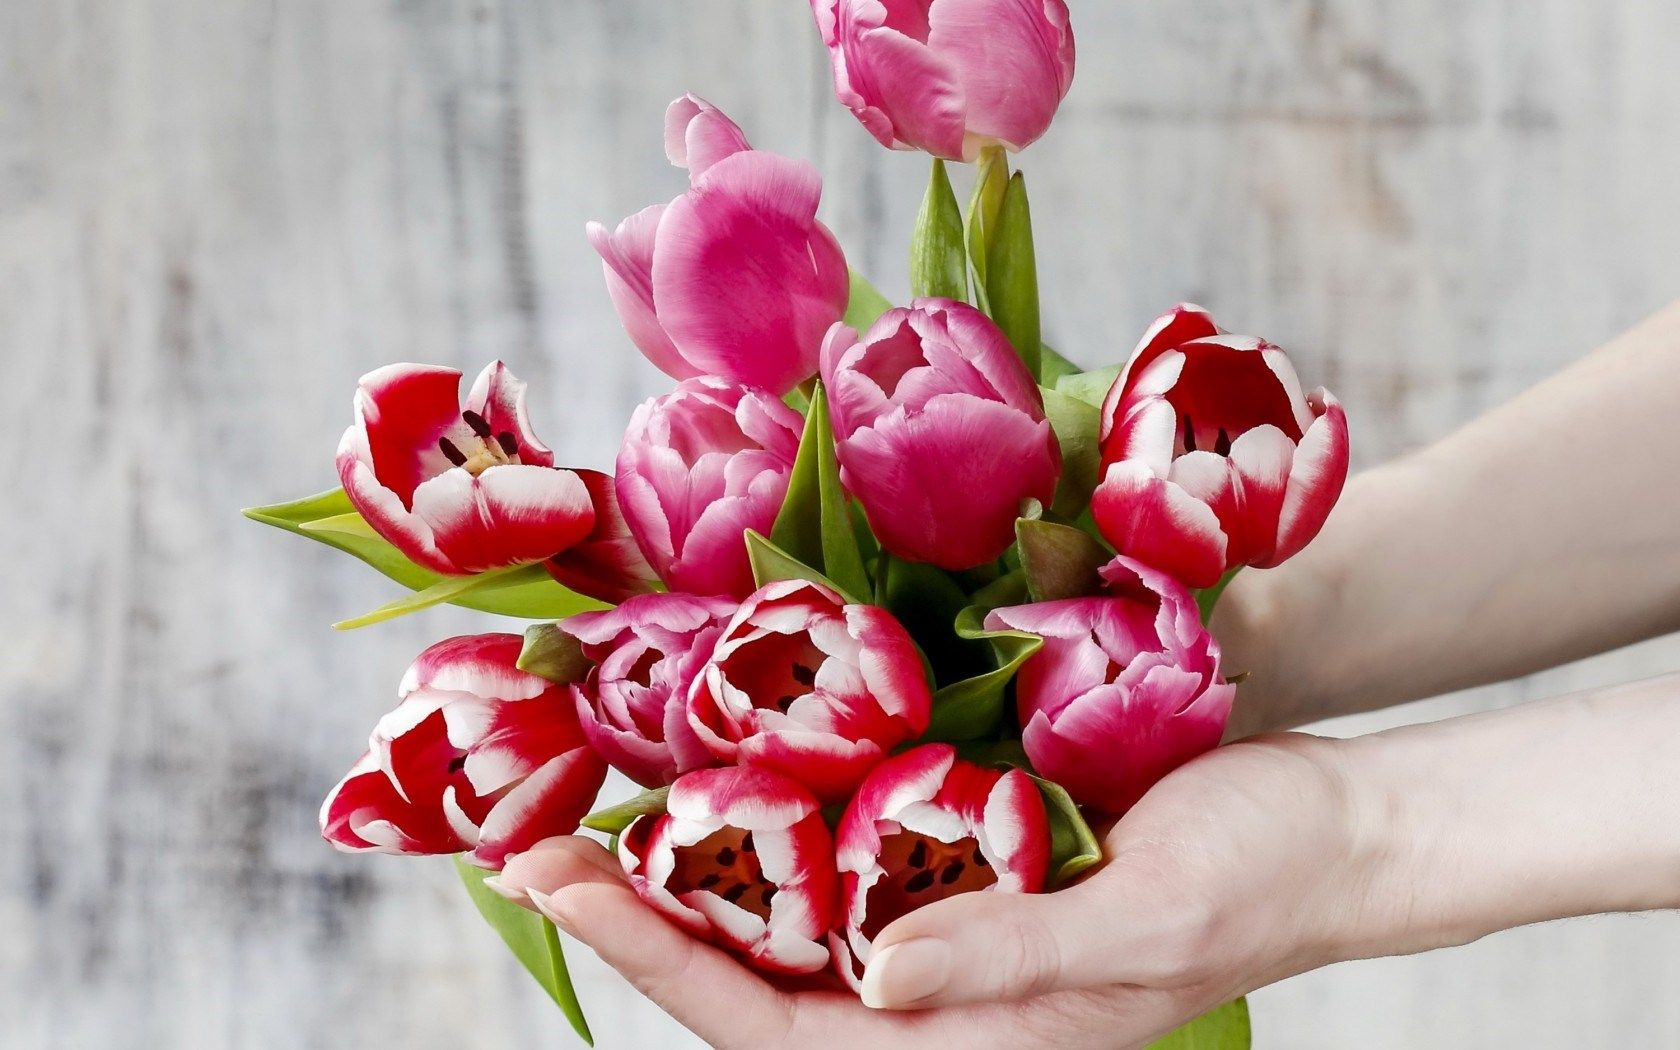 Tulips Flower In Hand Tulips Flowers Hd Wallpapers Free Download